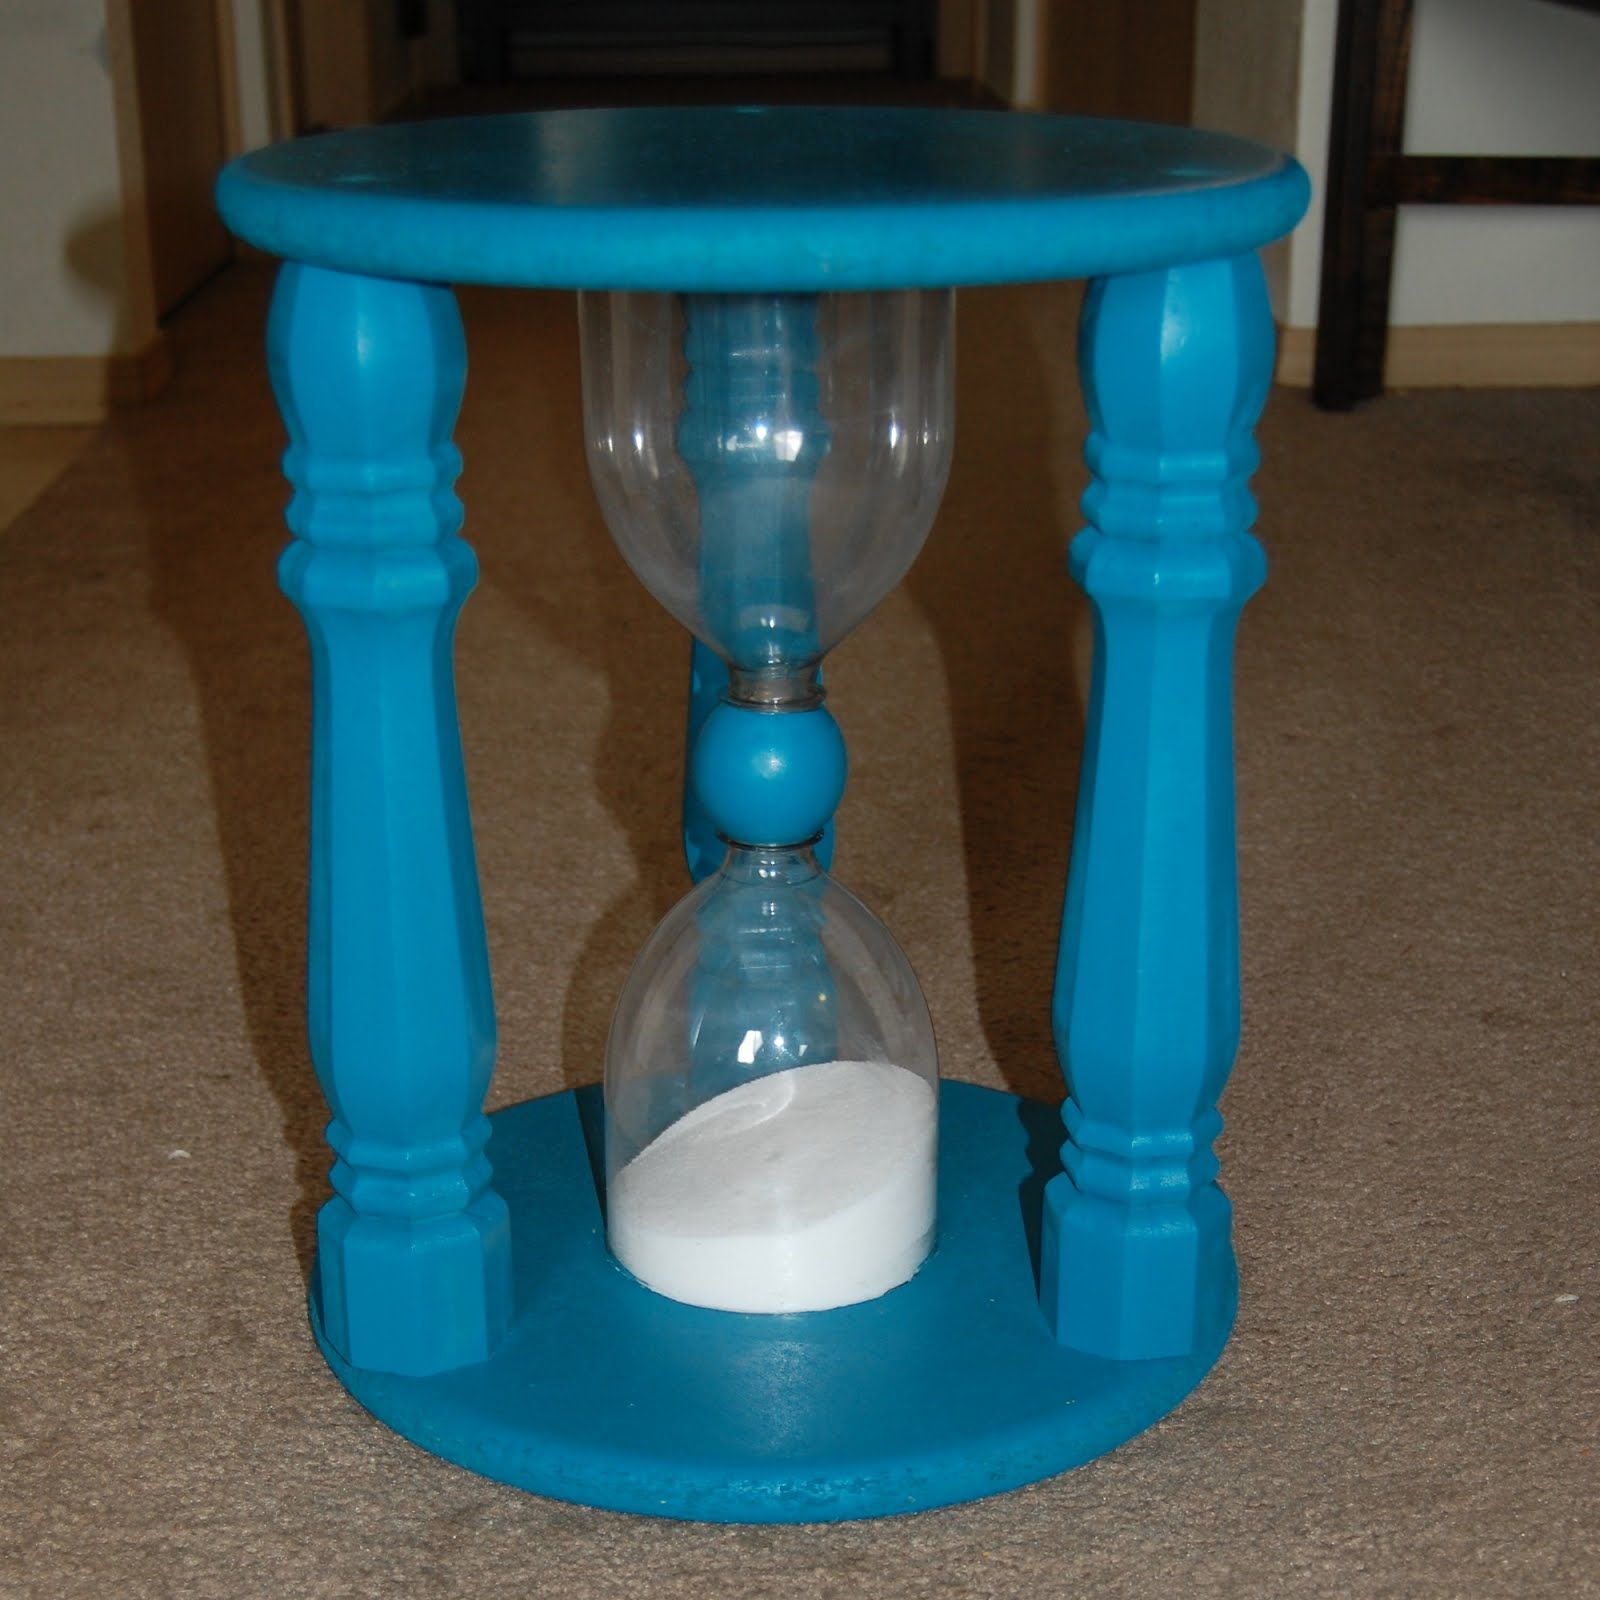 How to Make an Hourglass Clock Out of Light Bulbs How to Make an Hourglass Clock Out of Light Bulbs new pics